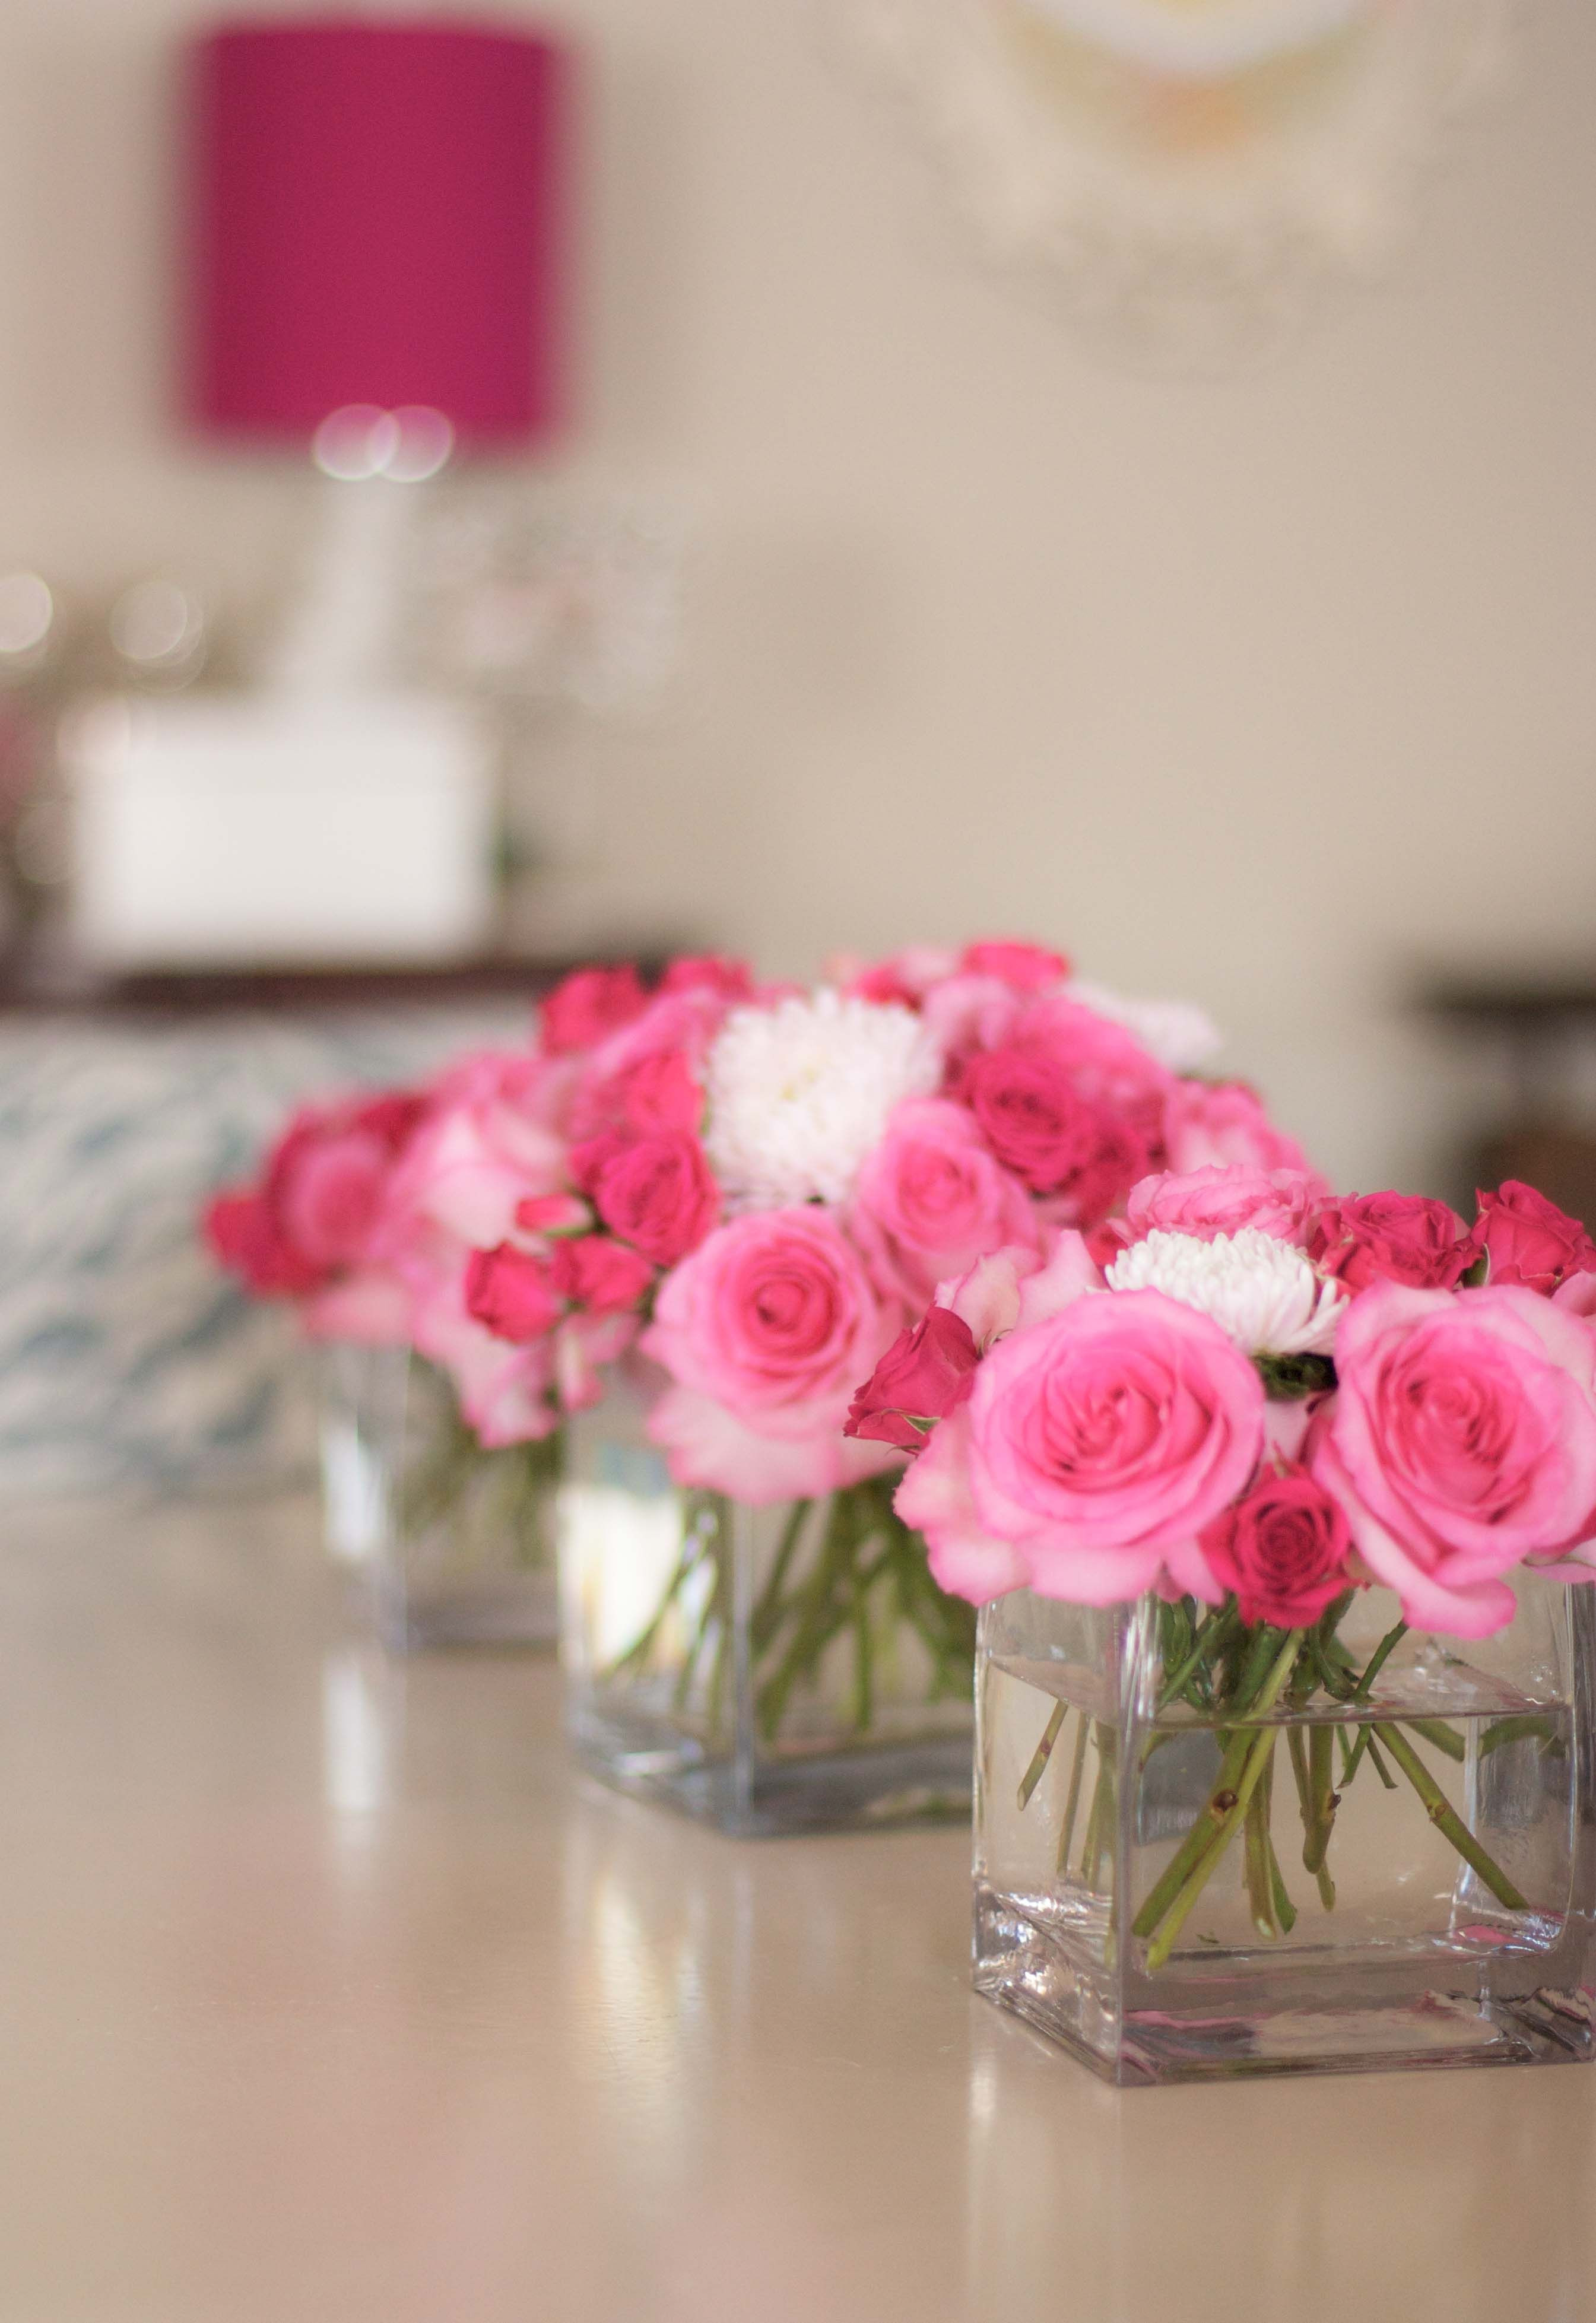 Flower Delivery Seattle area Inspirational Simple Arrangement Ideas for the Tables if You Want to Go with